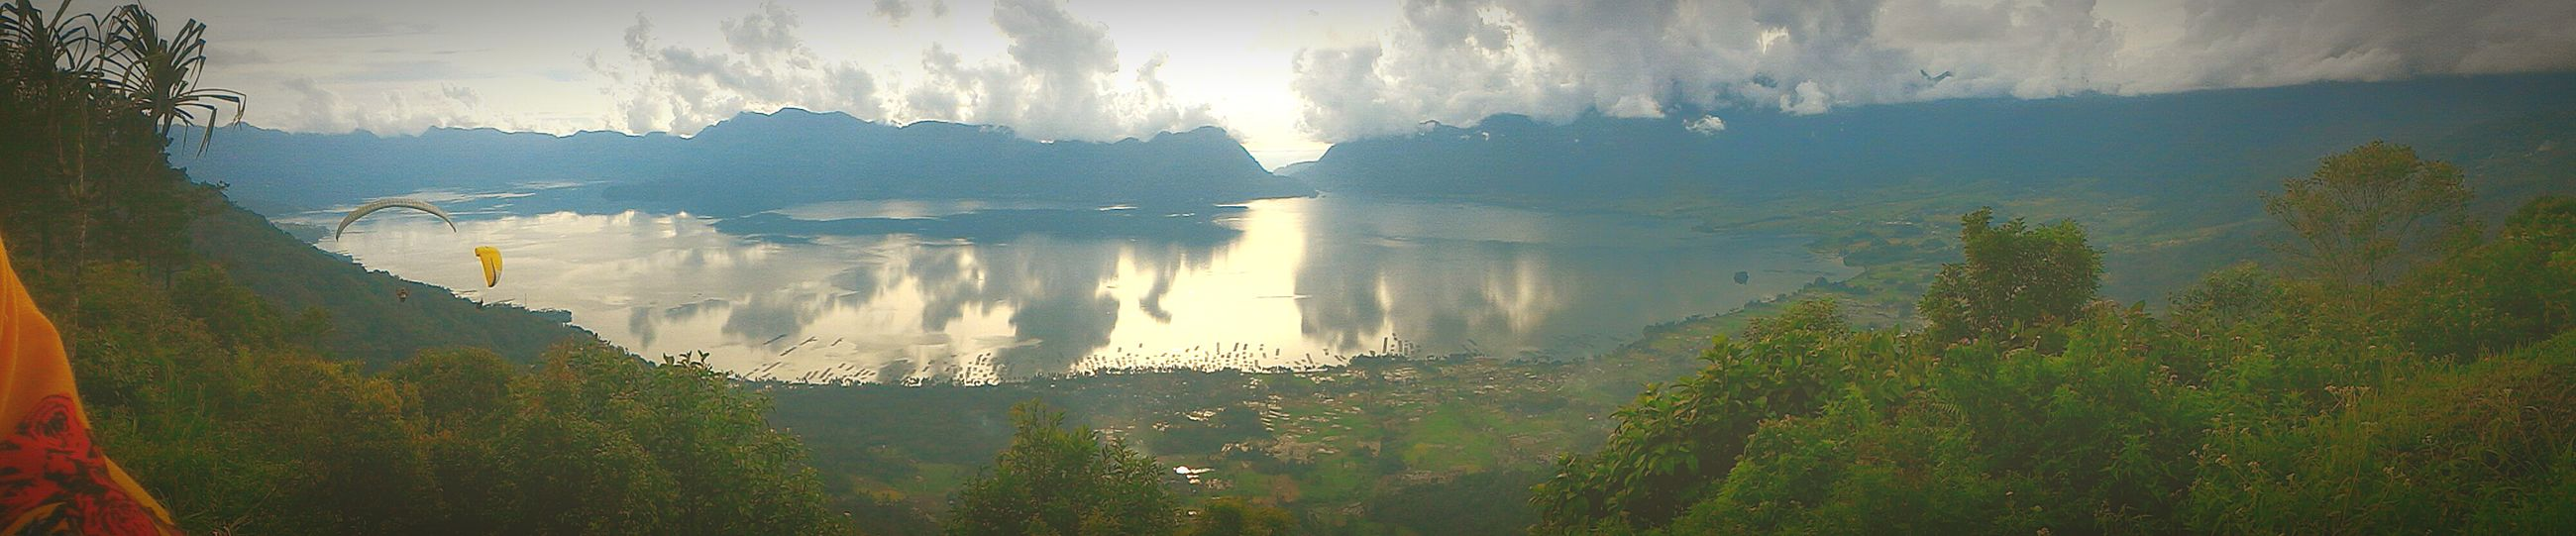 Maninjau lake,west sumatra